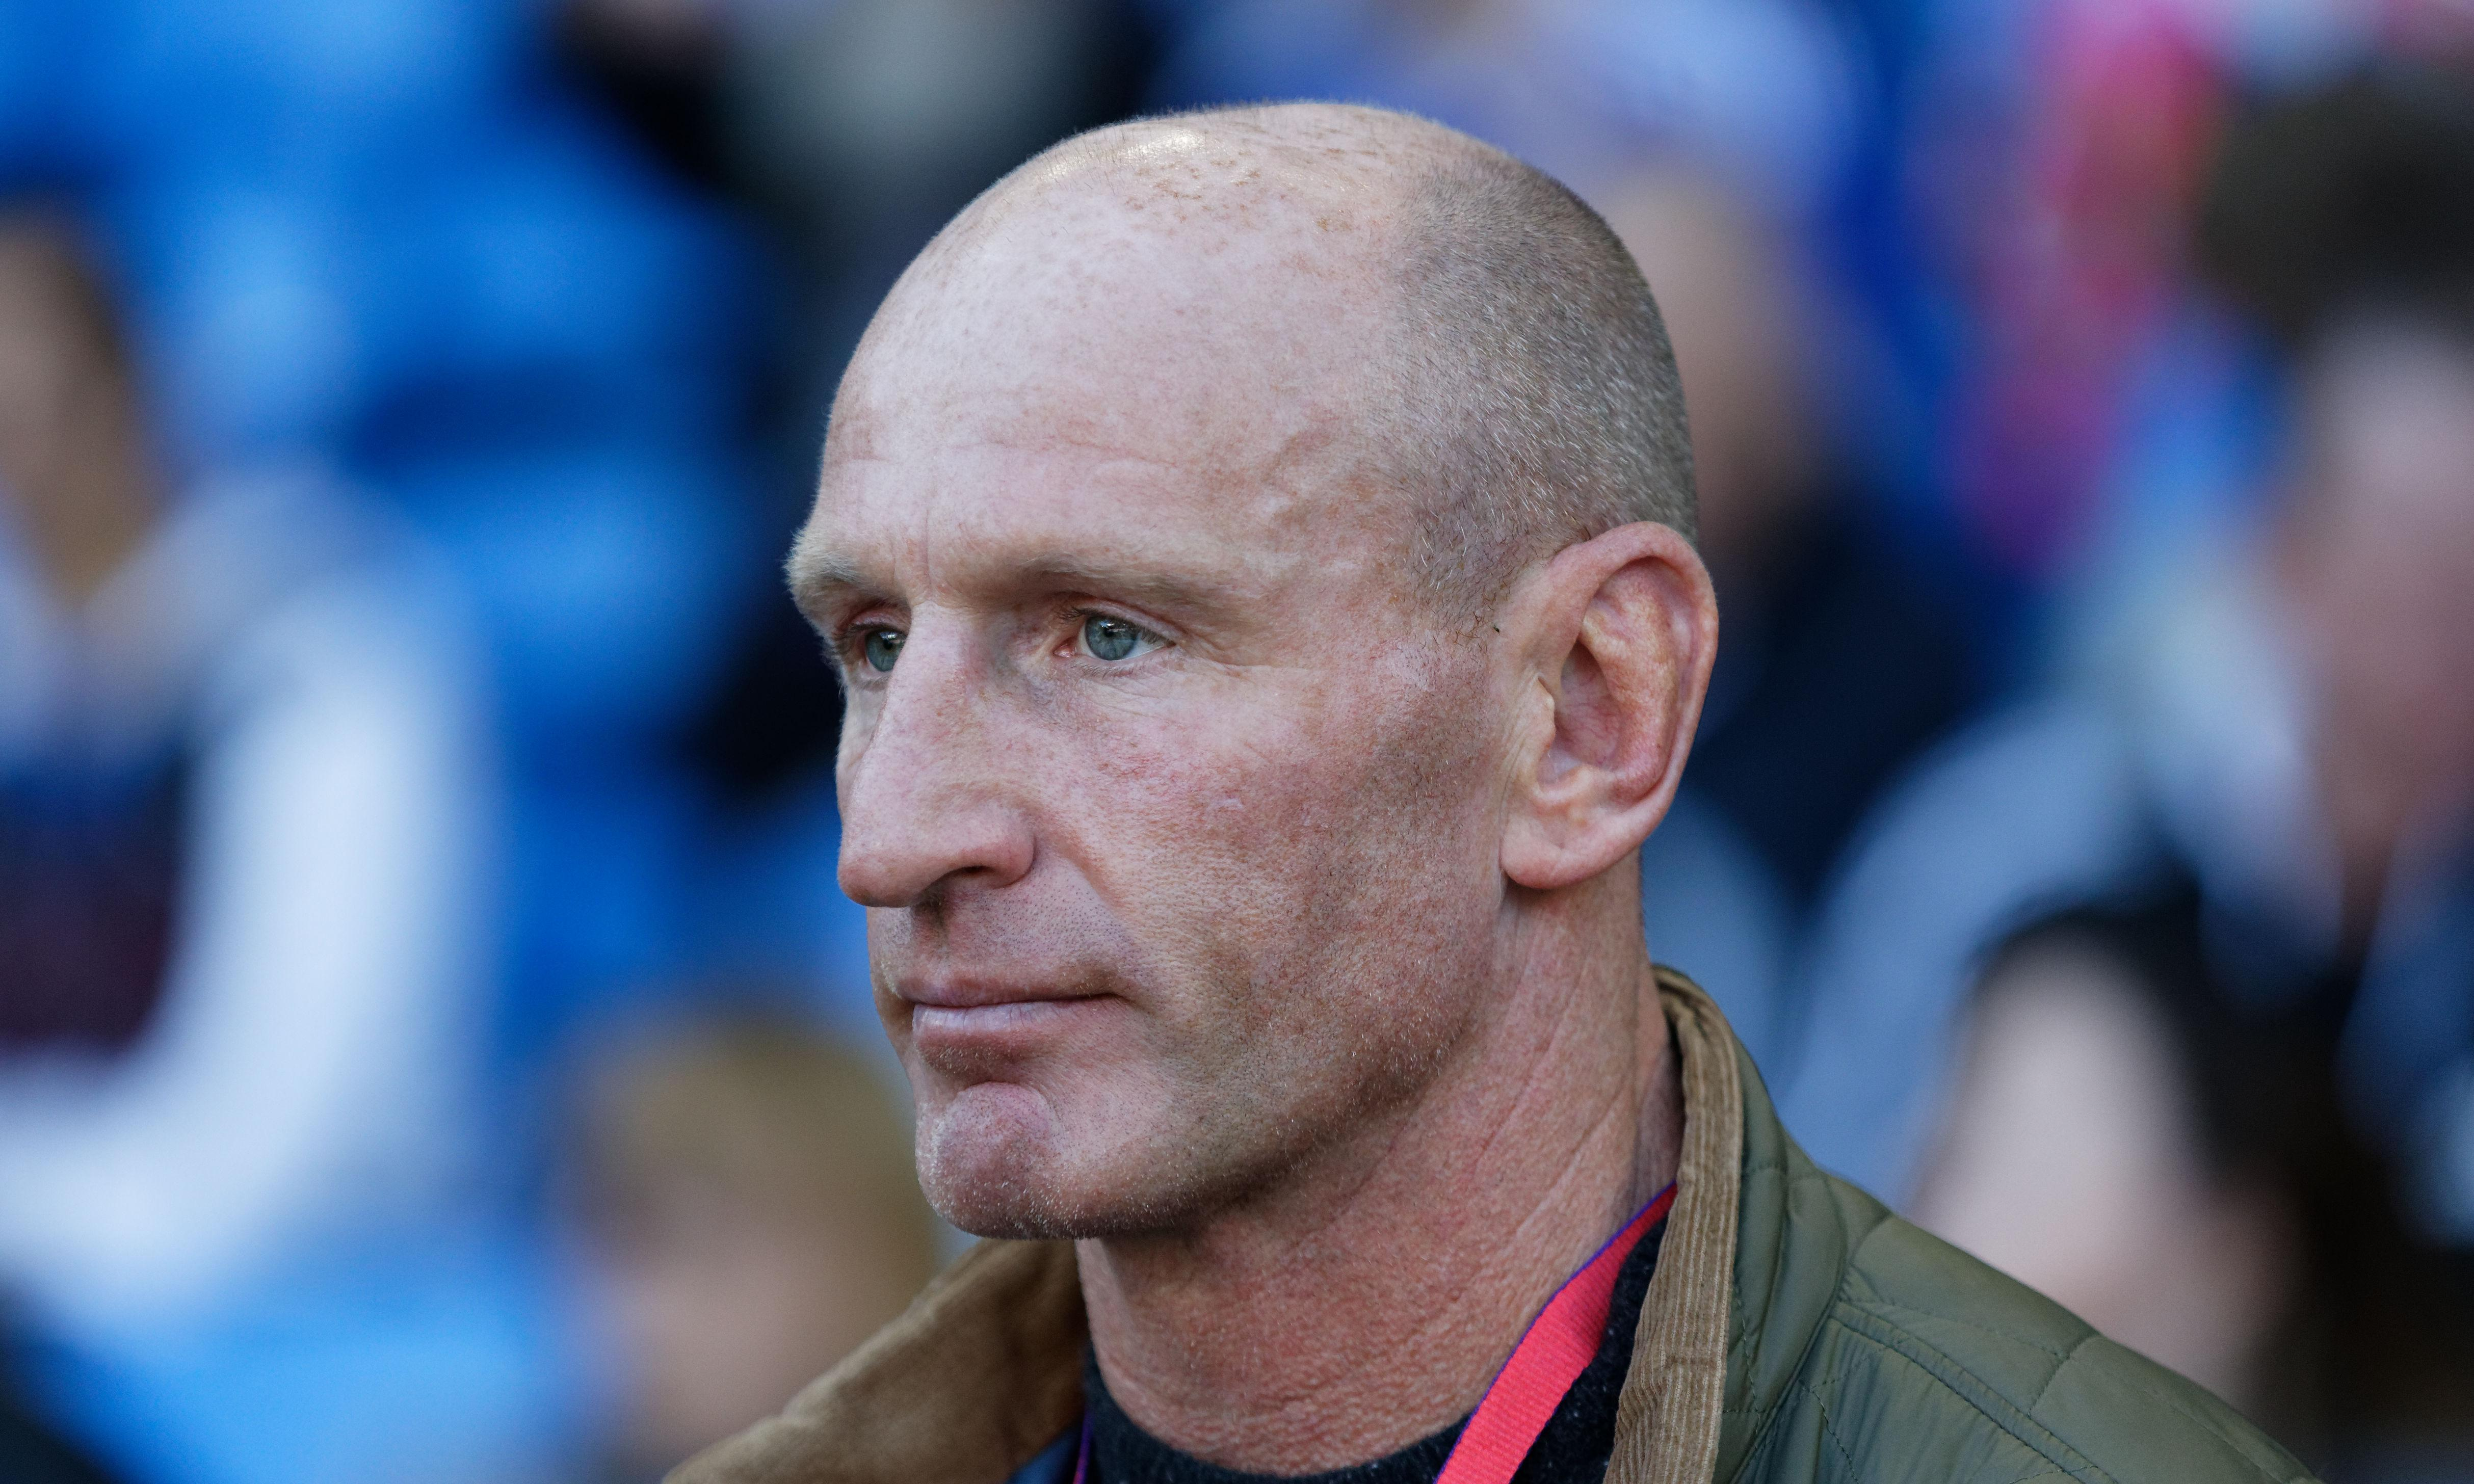 Welsh rugby legend Gareth Thomas reveals HIV diagnosis